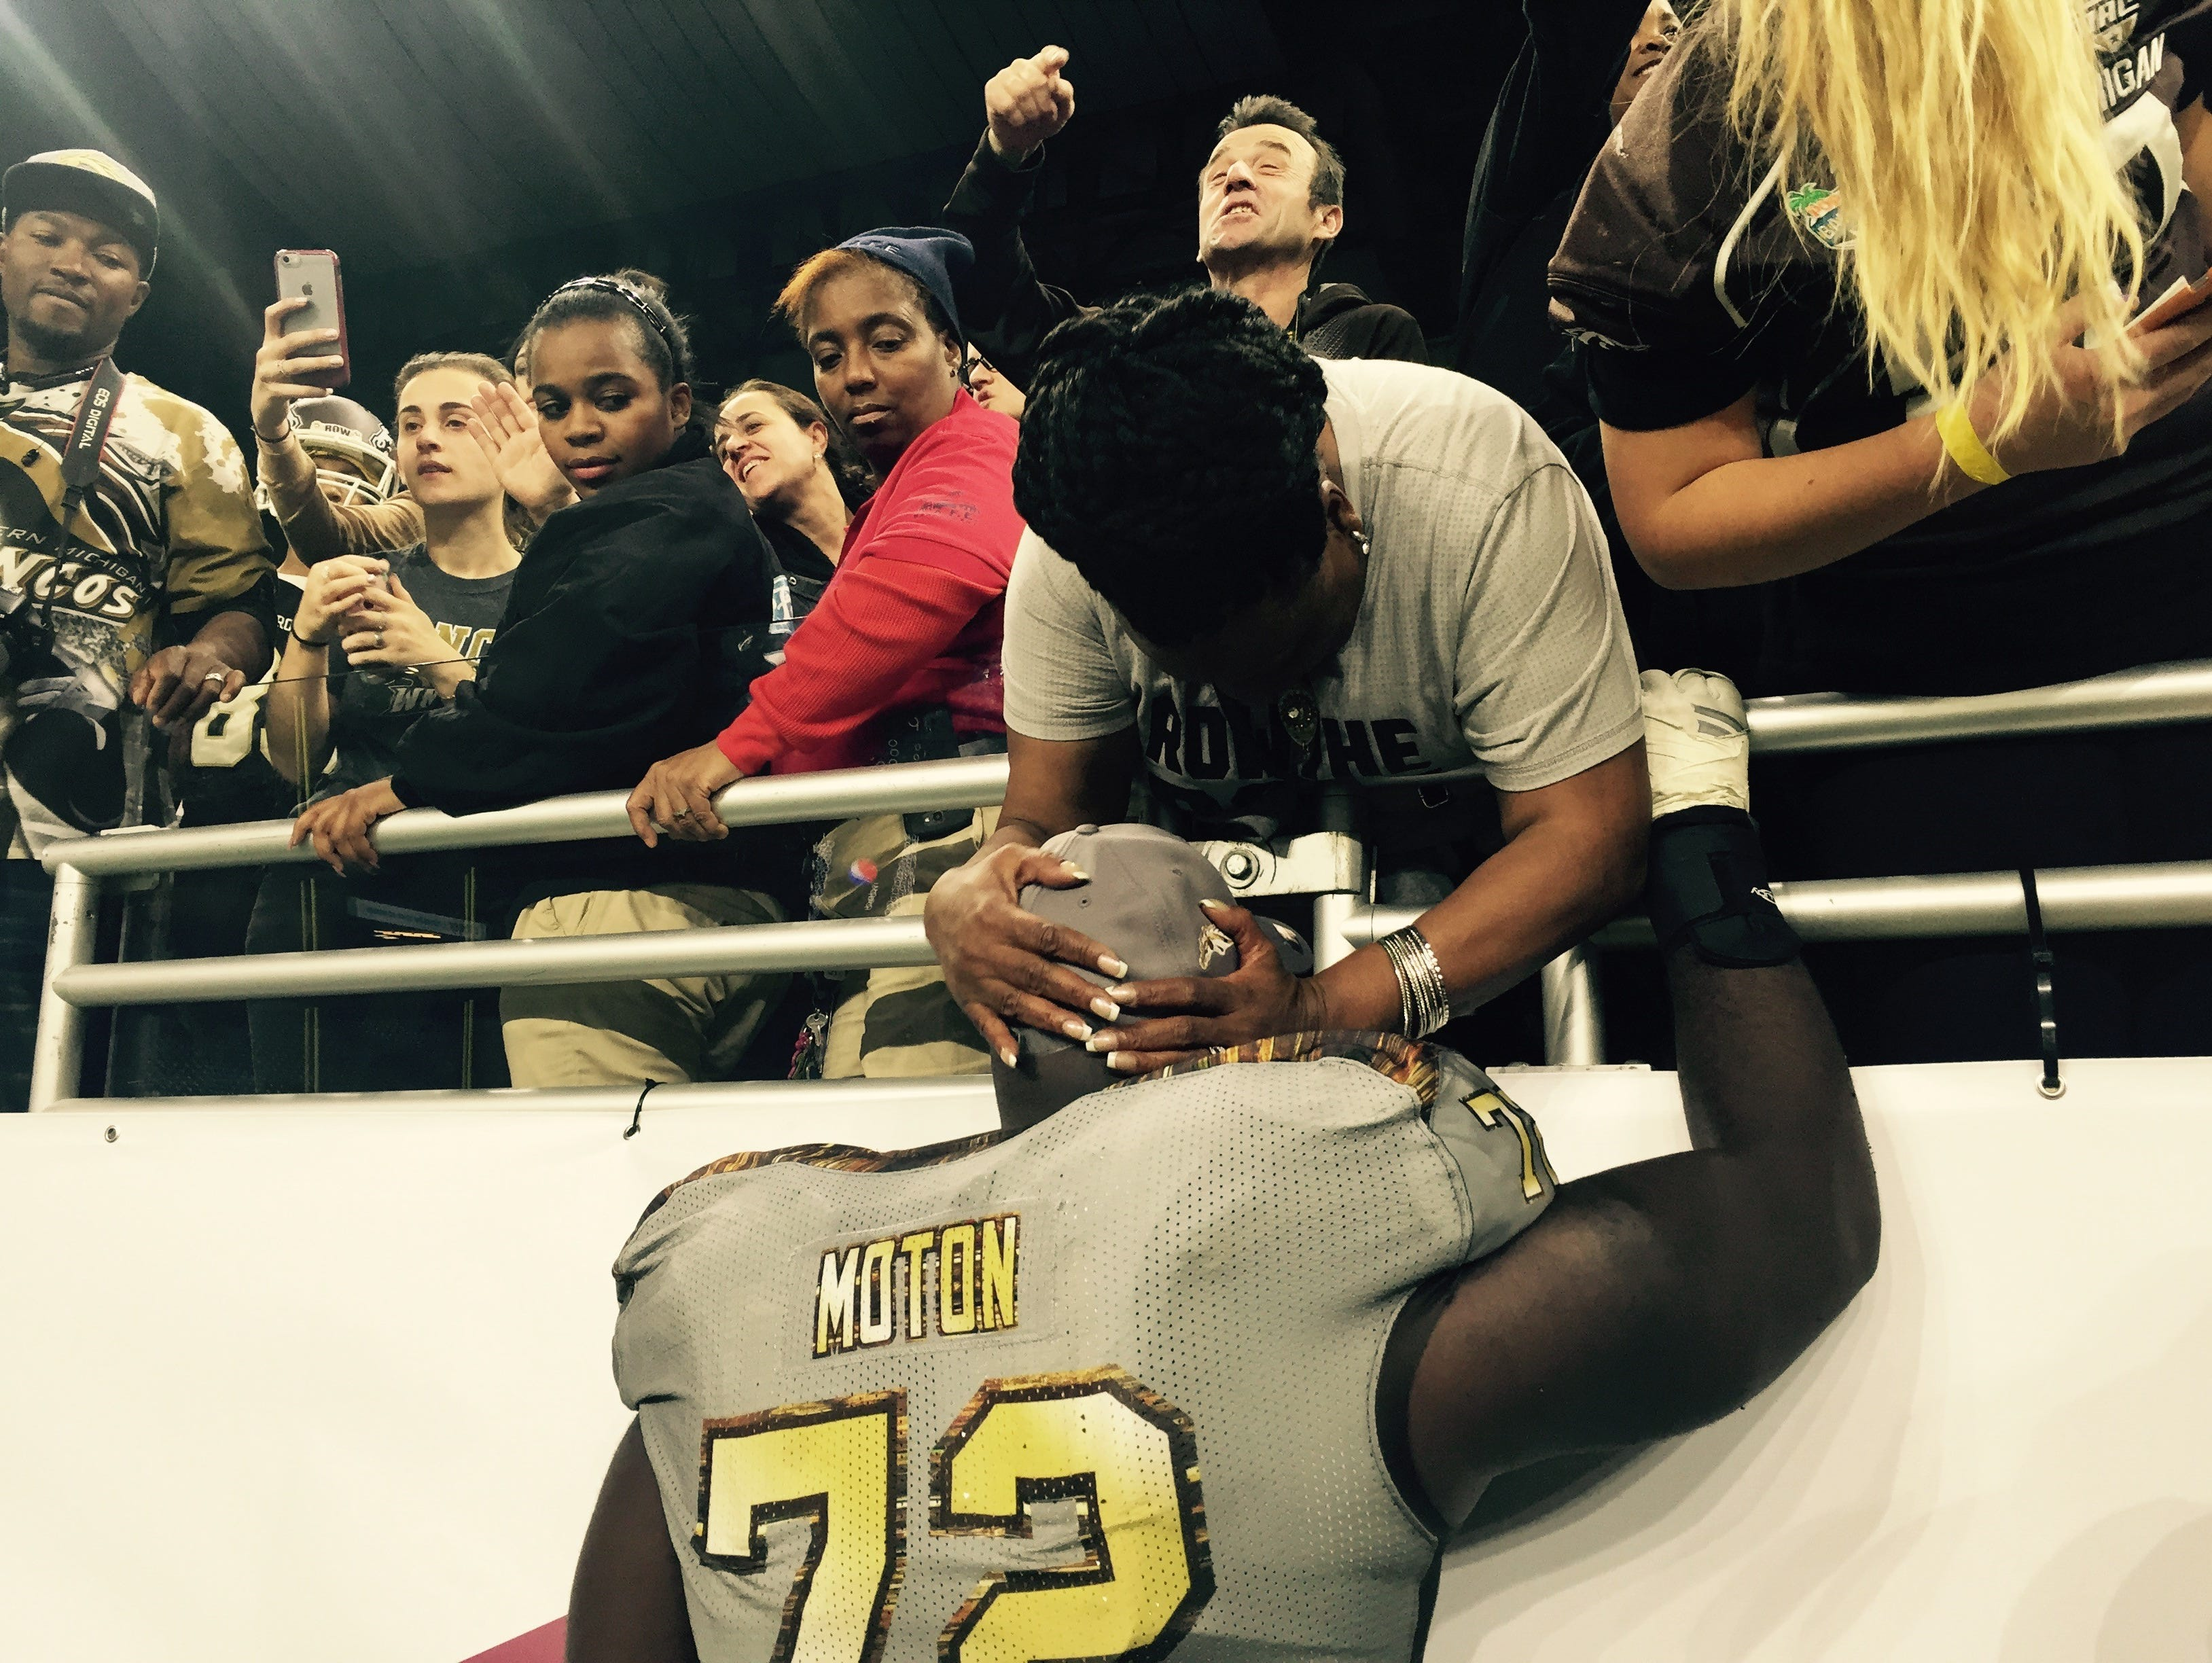 Senior Taylor Moton embraces his mother Sonya Gunnings-Husband after his Western Michigan Broncos knocked off Ohio 29-23 in the MAC Championship at Ford Field in Detroit on Dec. 2